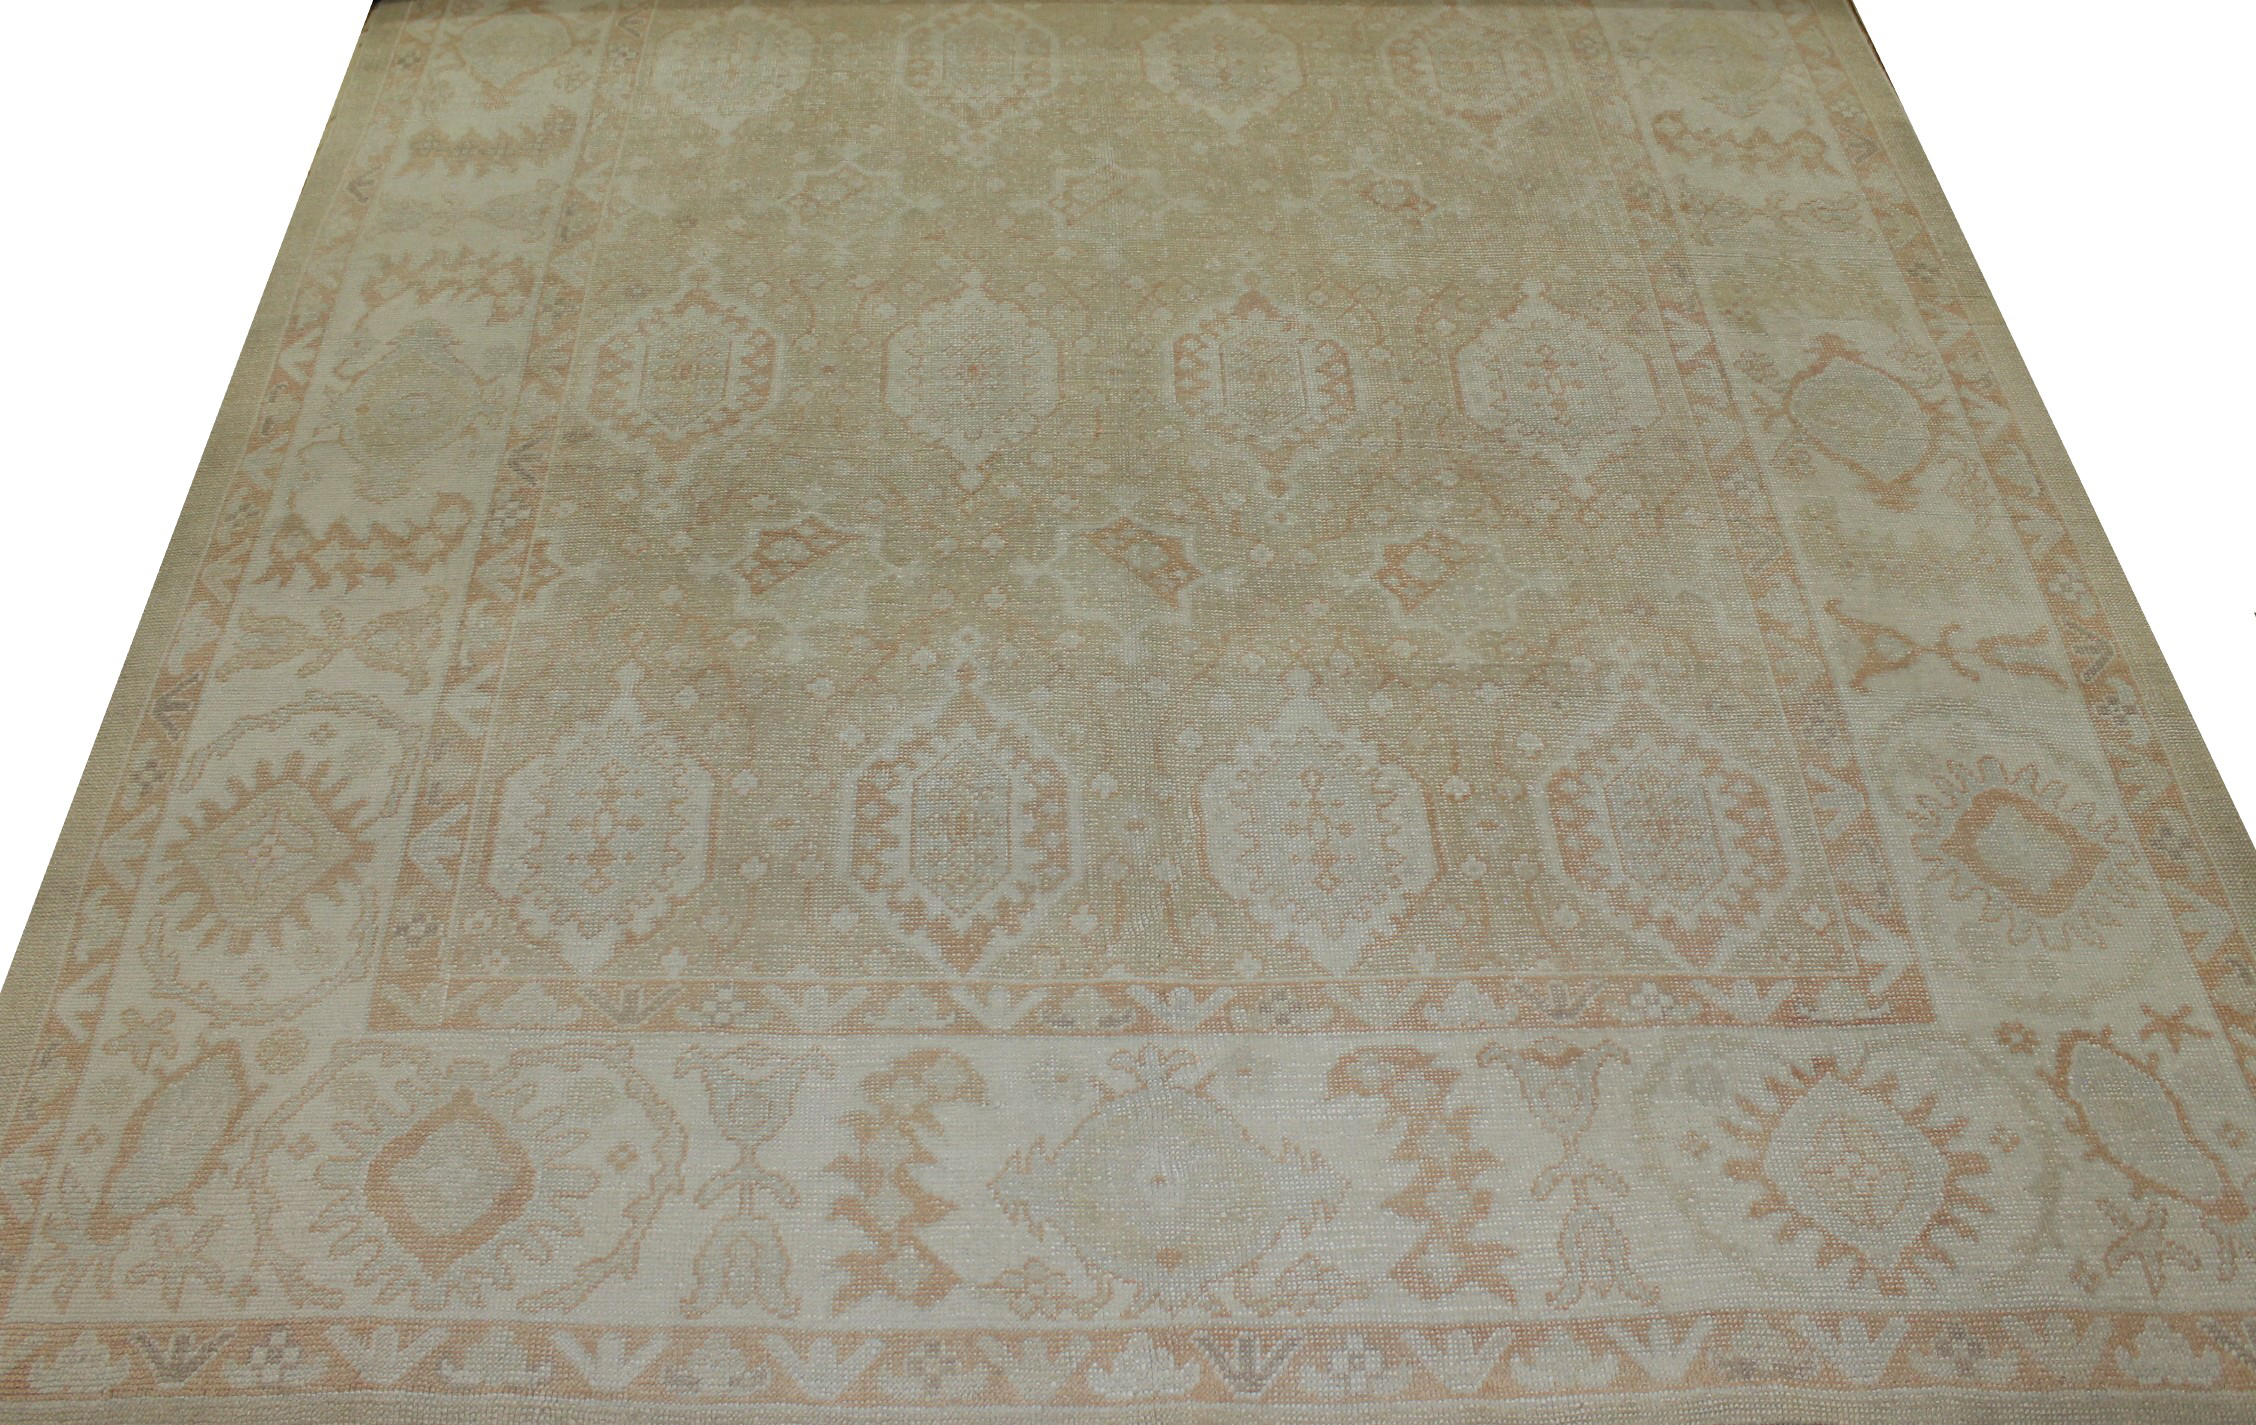 10x14 Oushak Hand Knotted Wool Area Rug - MR15242